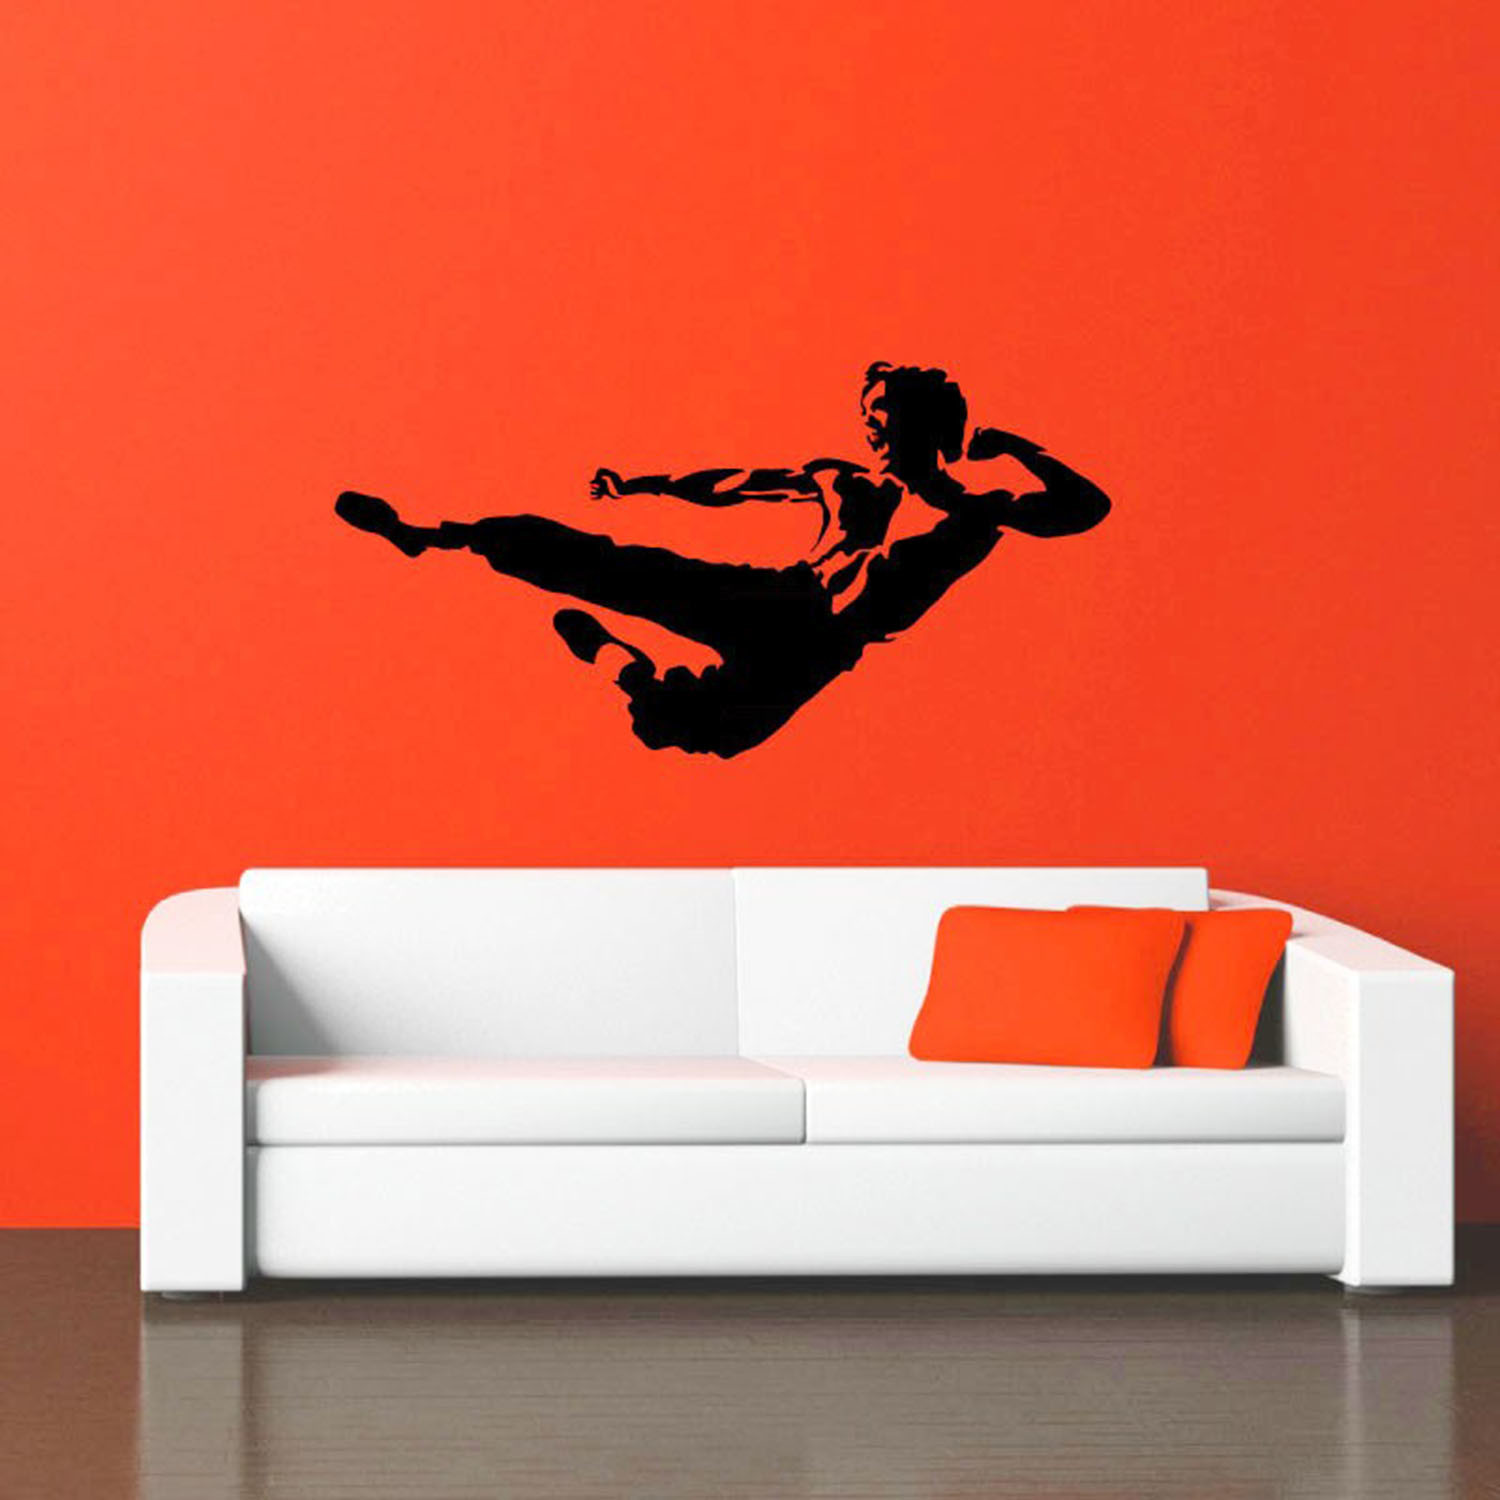 Ambiance Wall Stickers bruce lee karate - ambiance sticker - touch of modern